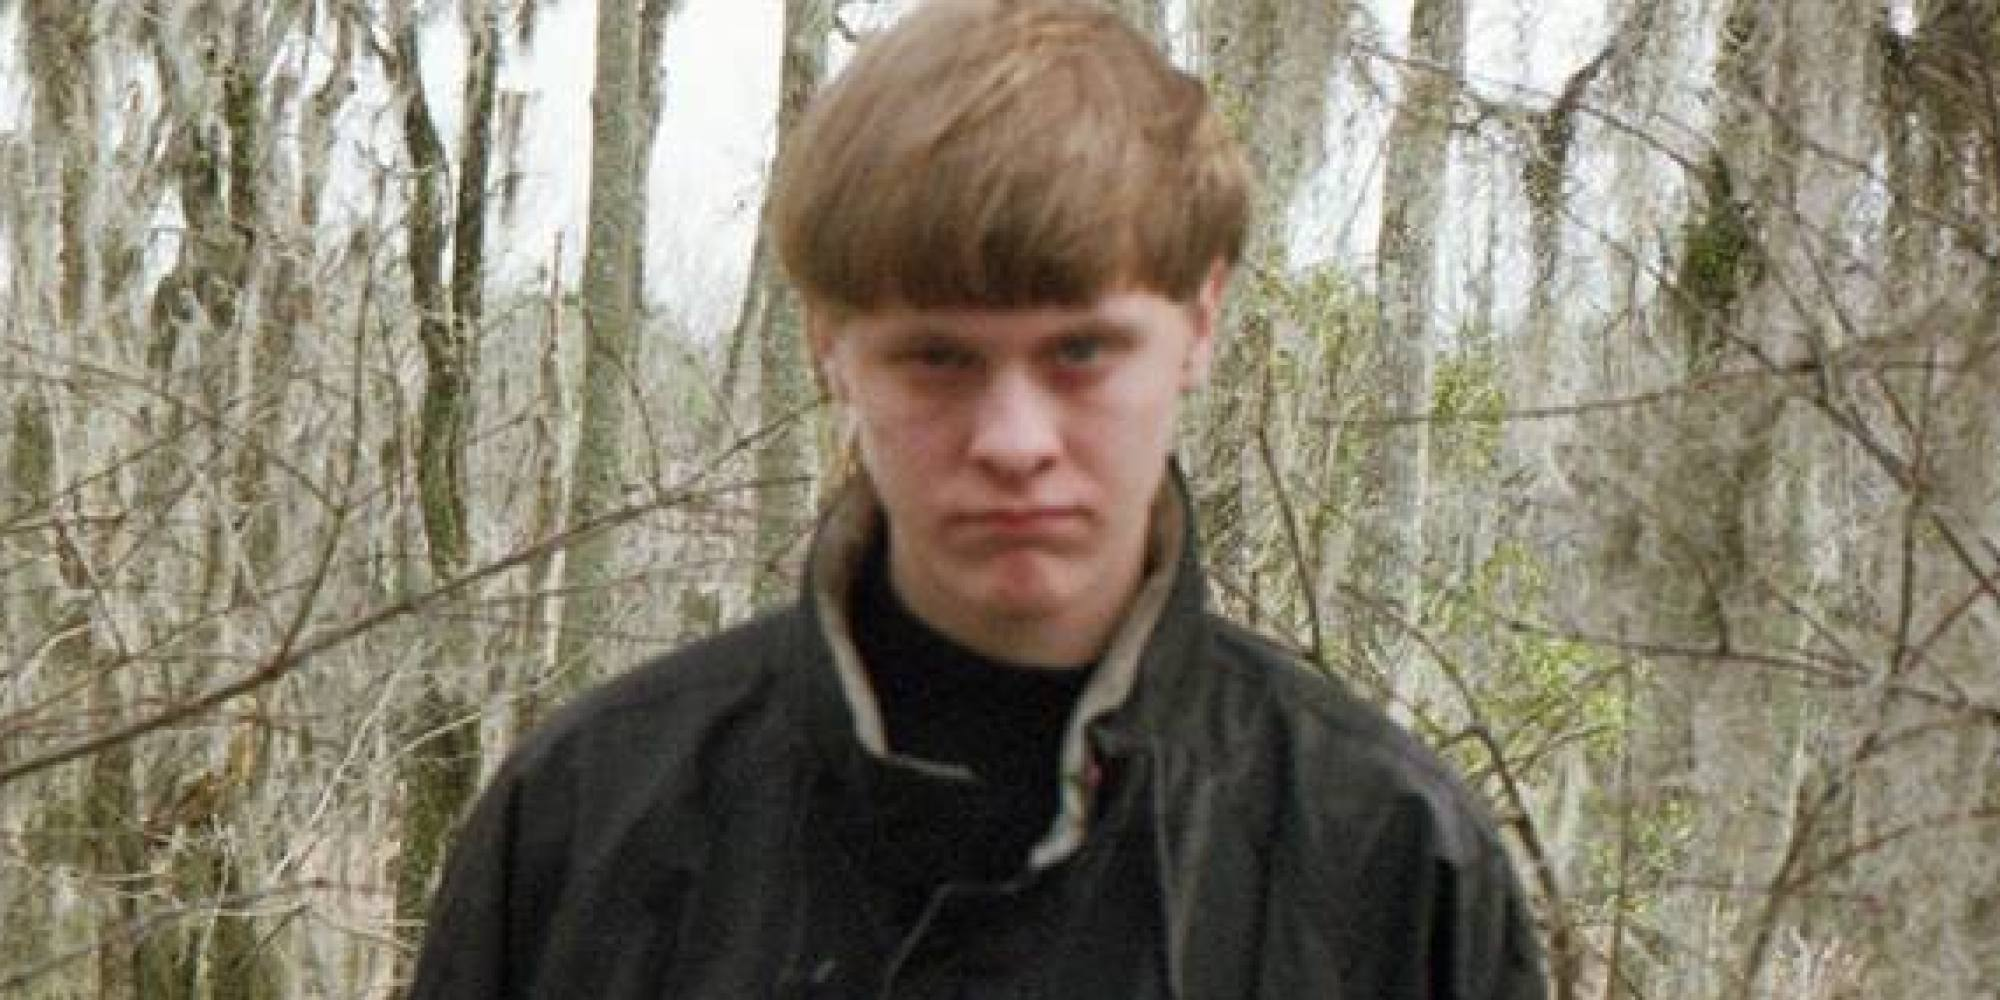 The trial of 22-year-old Dylann Roof has been delayed yet again as the Justice Department is still determining whether to impose a death sentence or not.  Photo credit: lnmradionetwork